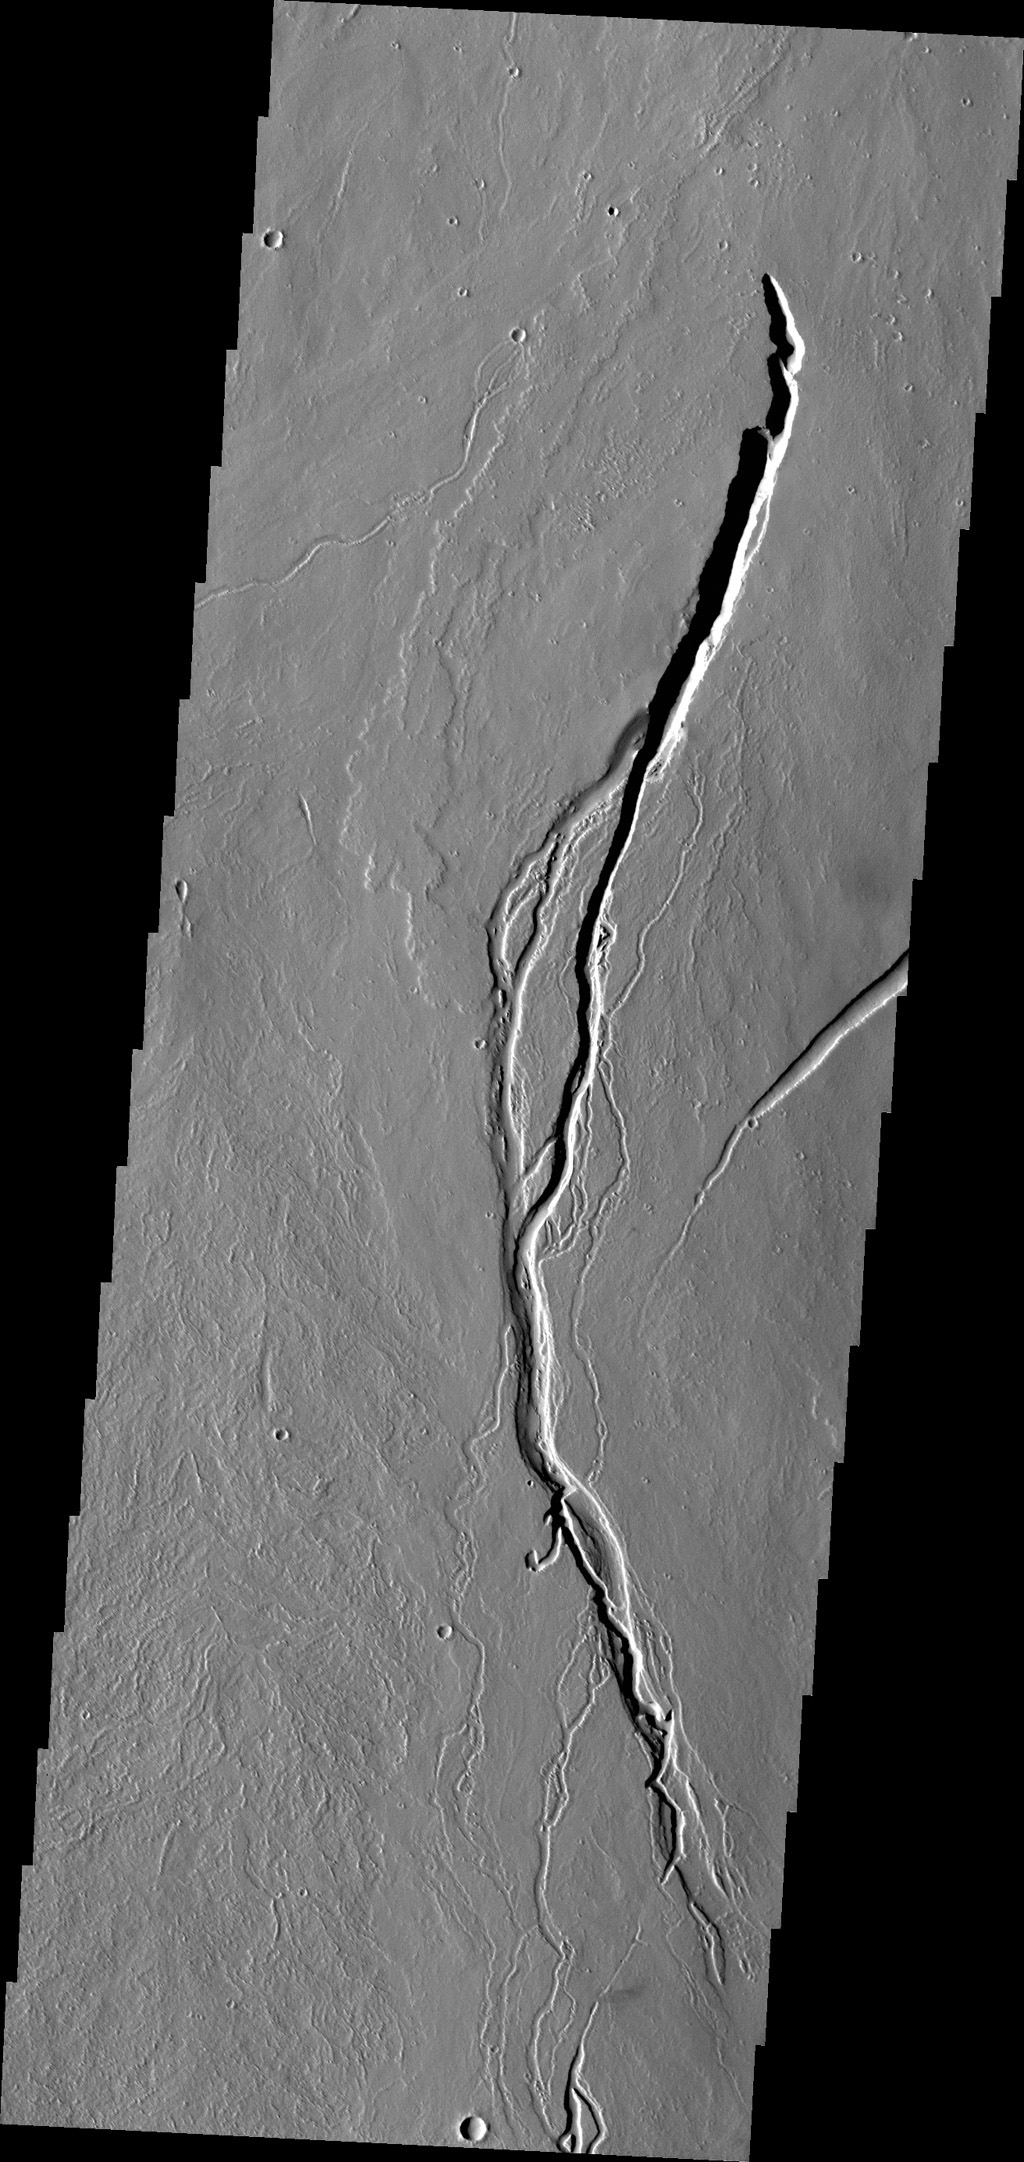 The lava channels in this image from NASA's 2001 Mars Odyssey spacecraft are located on the southern flank of Ascraeus Mons.